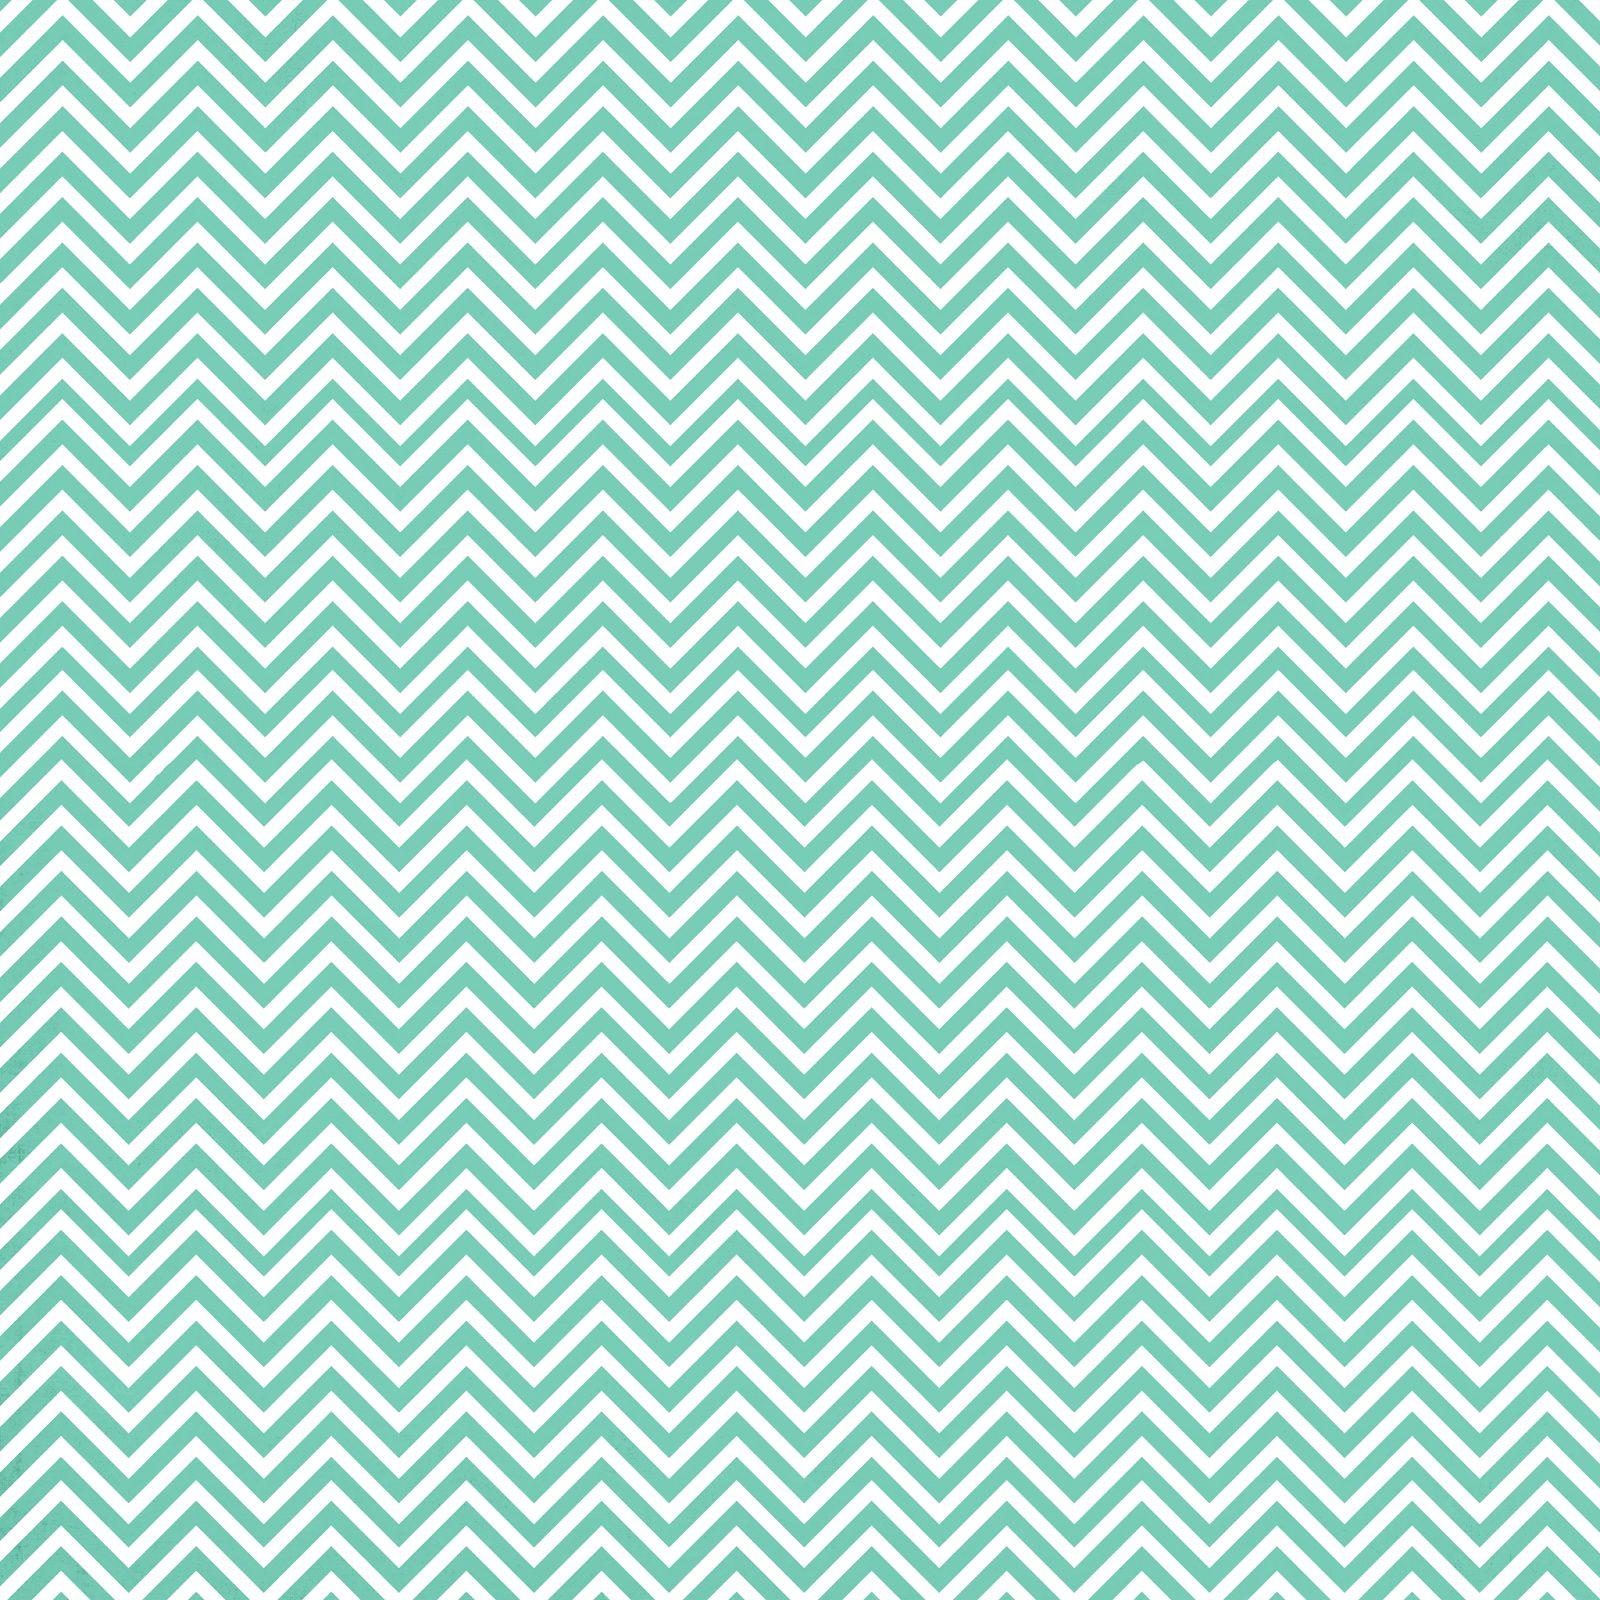 larger is better CHEVRON BACKGROUND PAPERS | free digital chevron ...